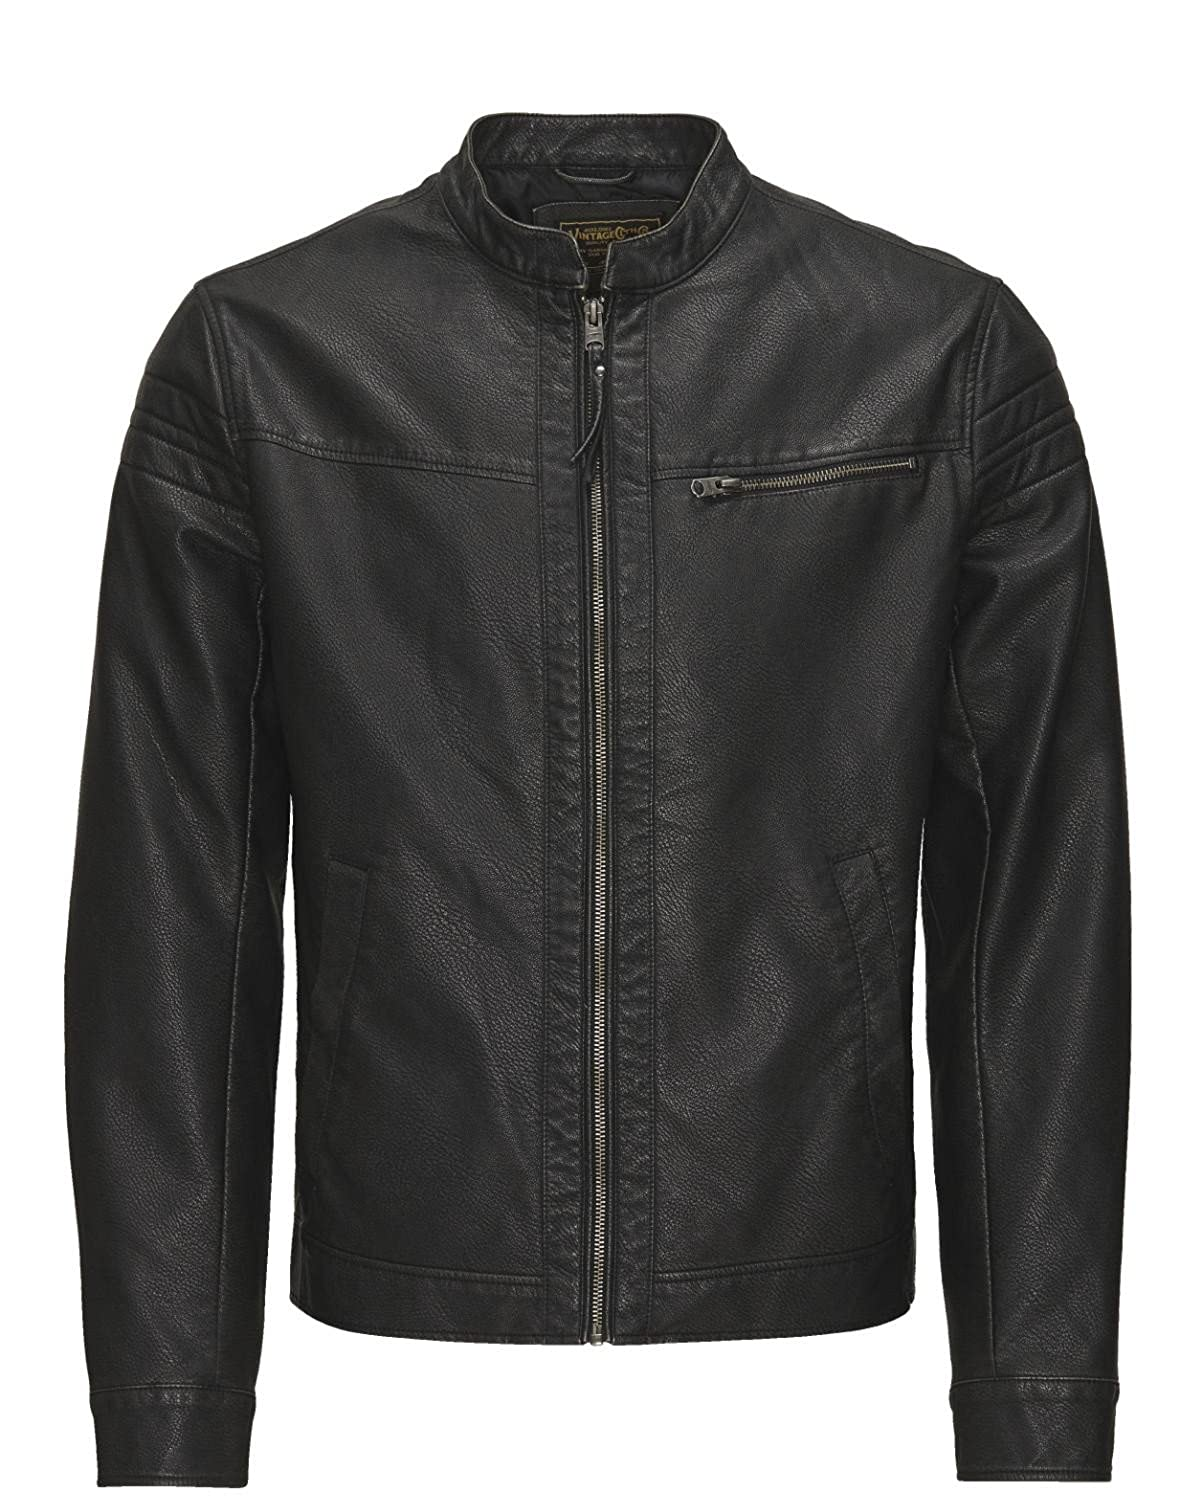 Jack and Jones JJVRACER Jacke Kunst Leder